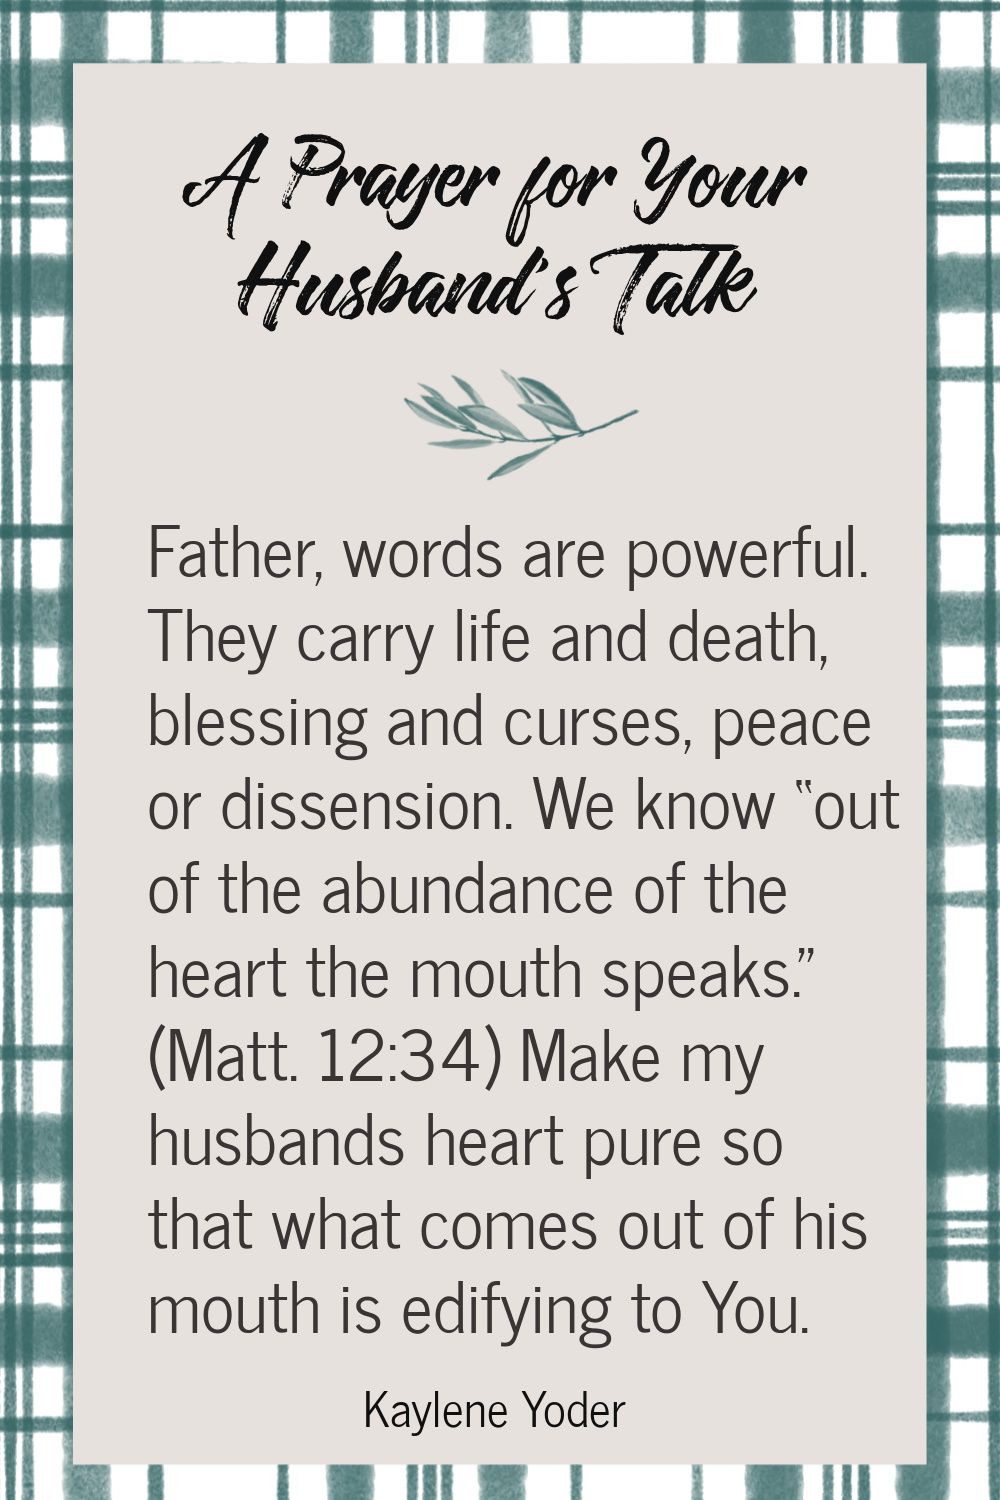 A Prayer for Your Husband's Talk